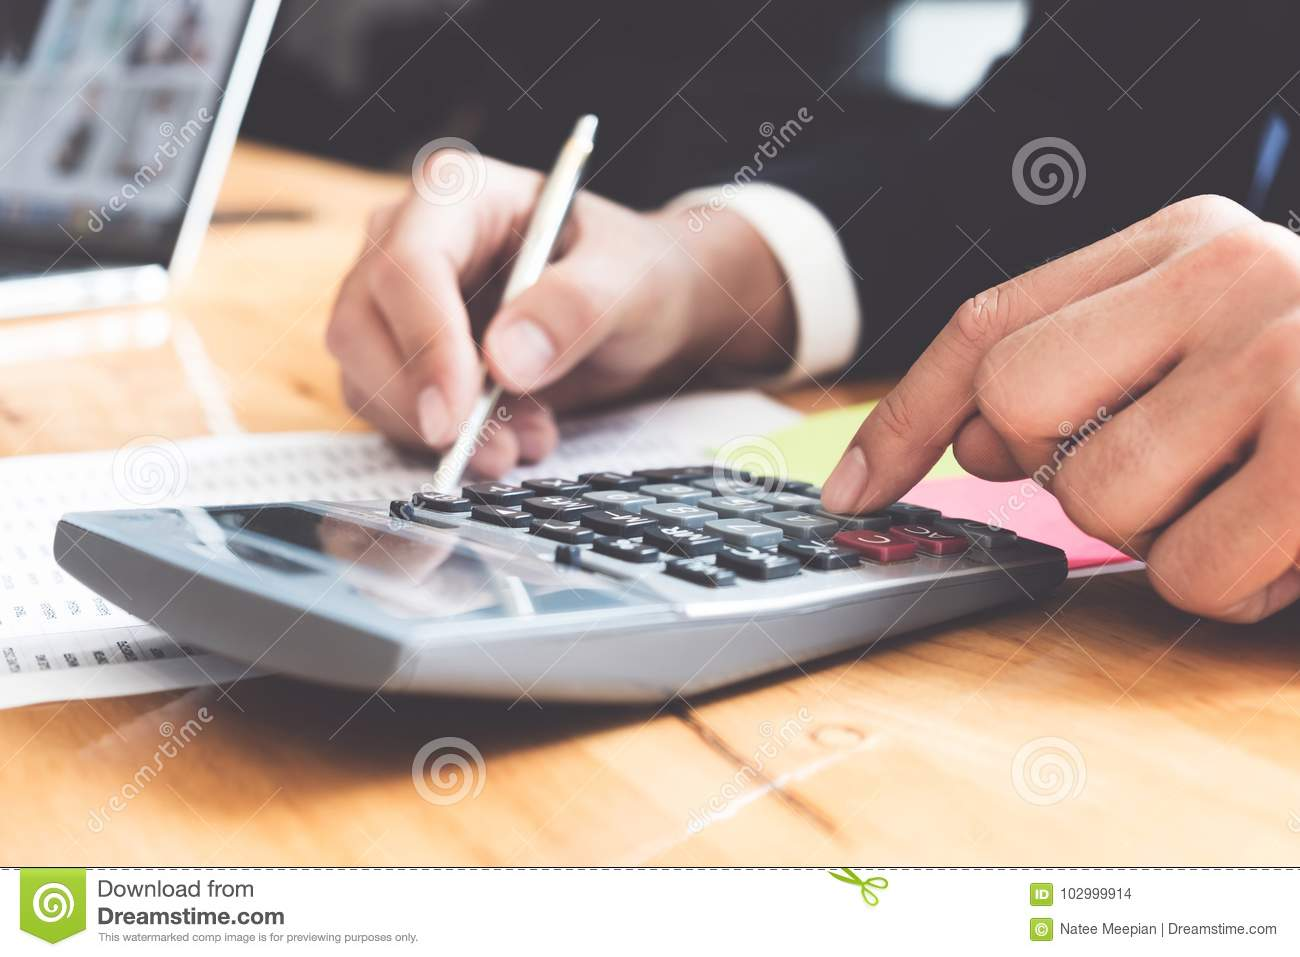 Photo of hands holding pen and pressing calculator buttons over